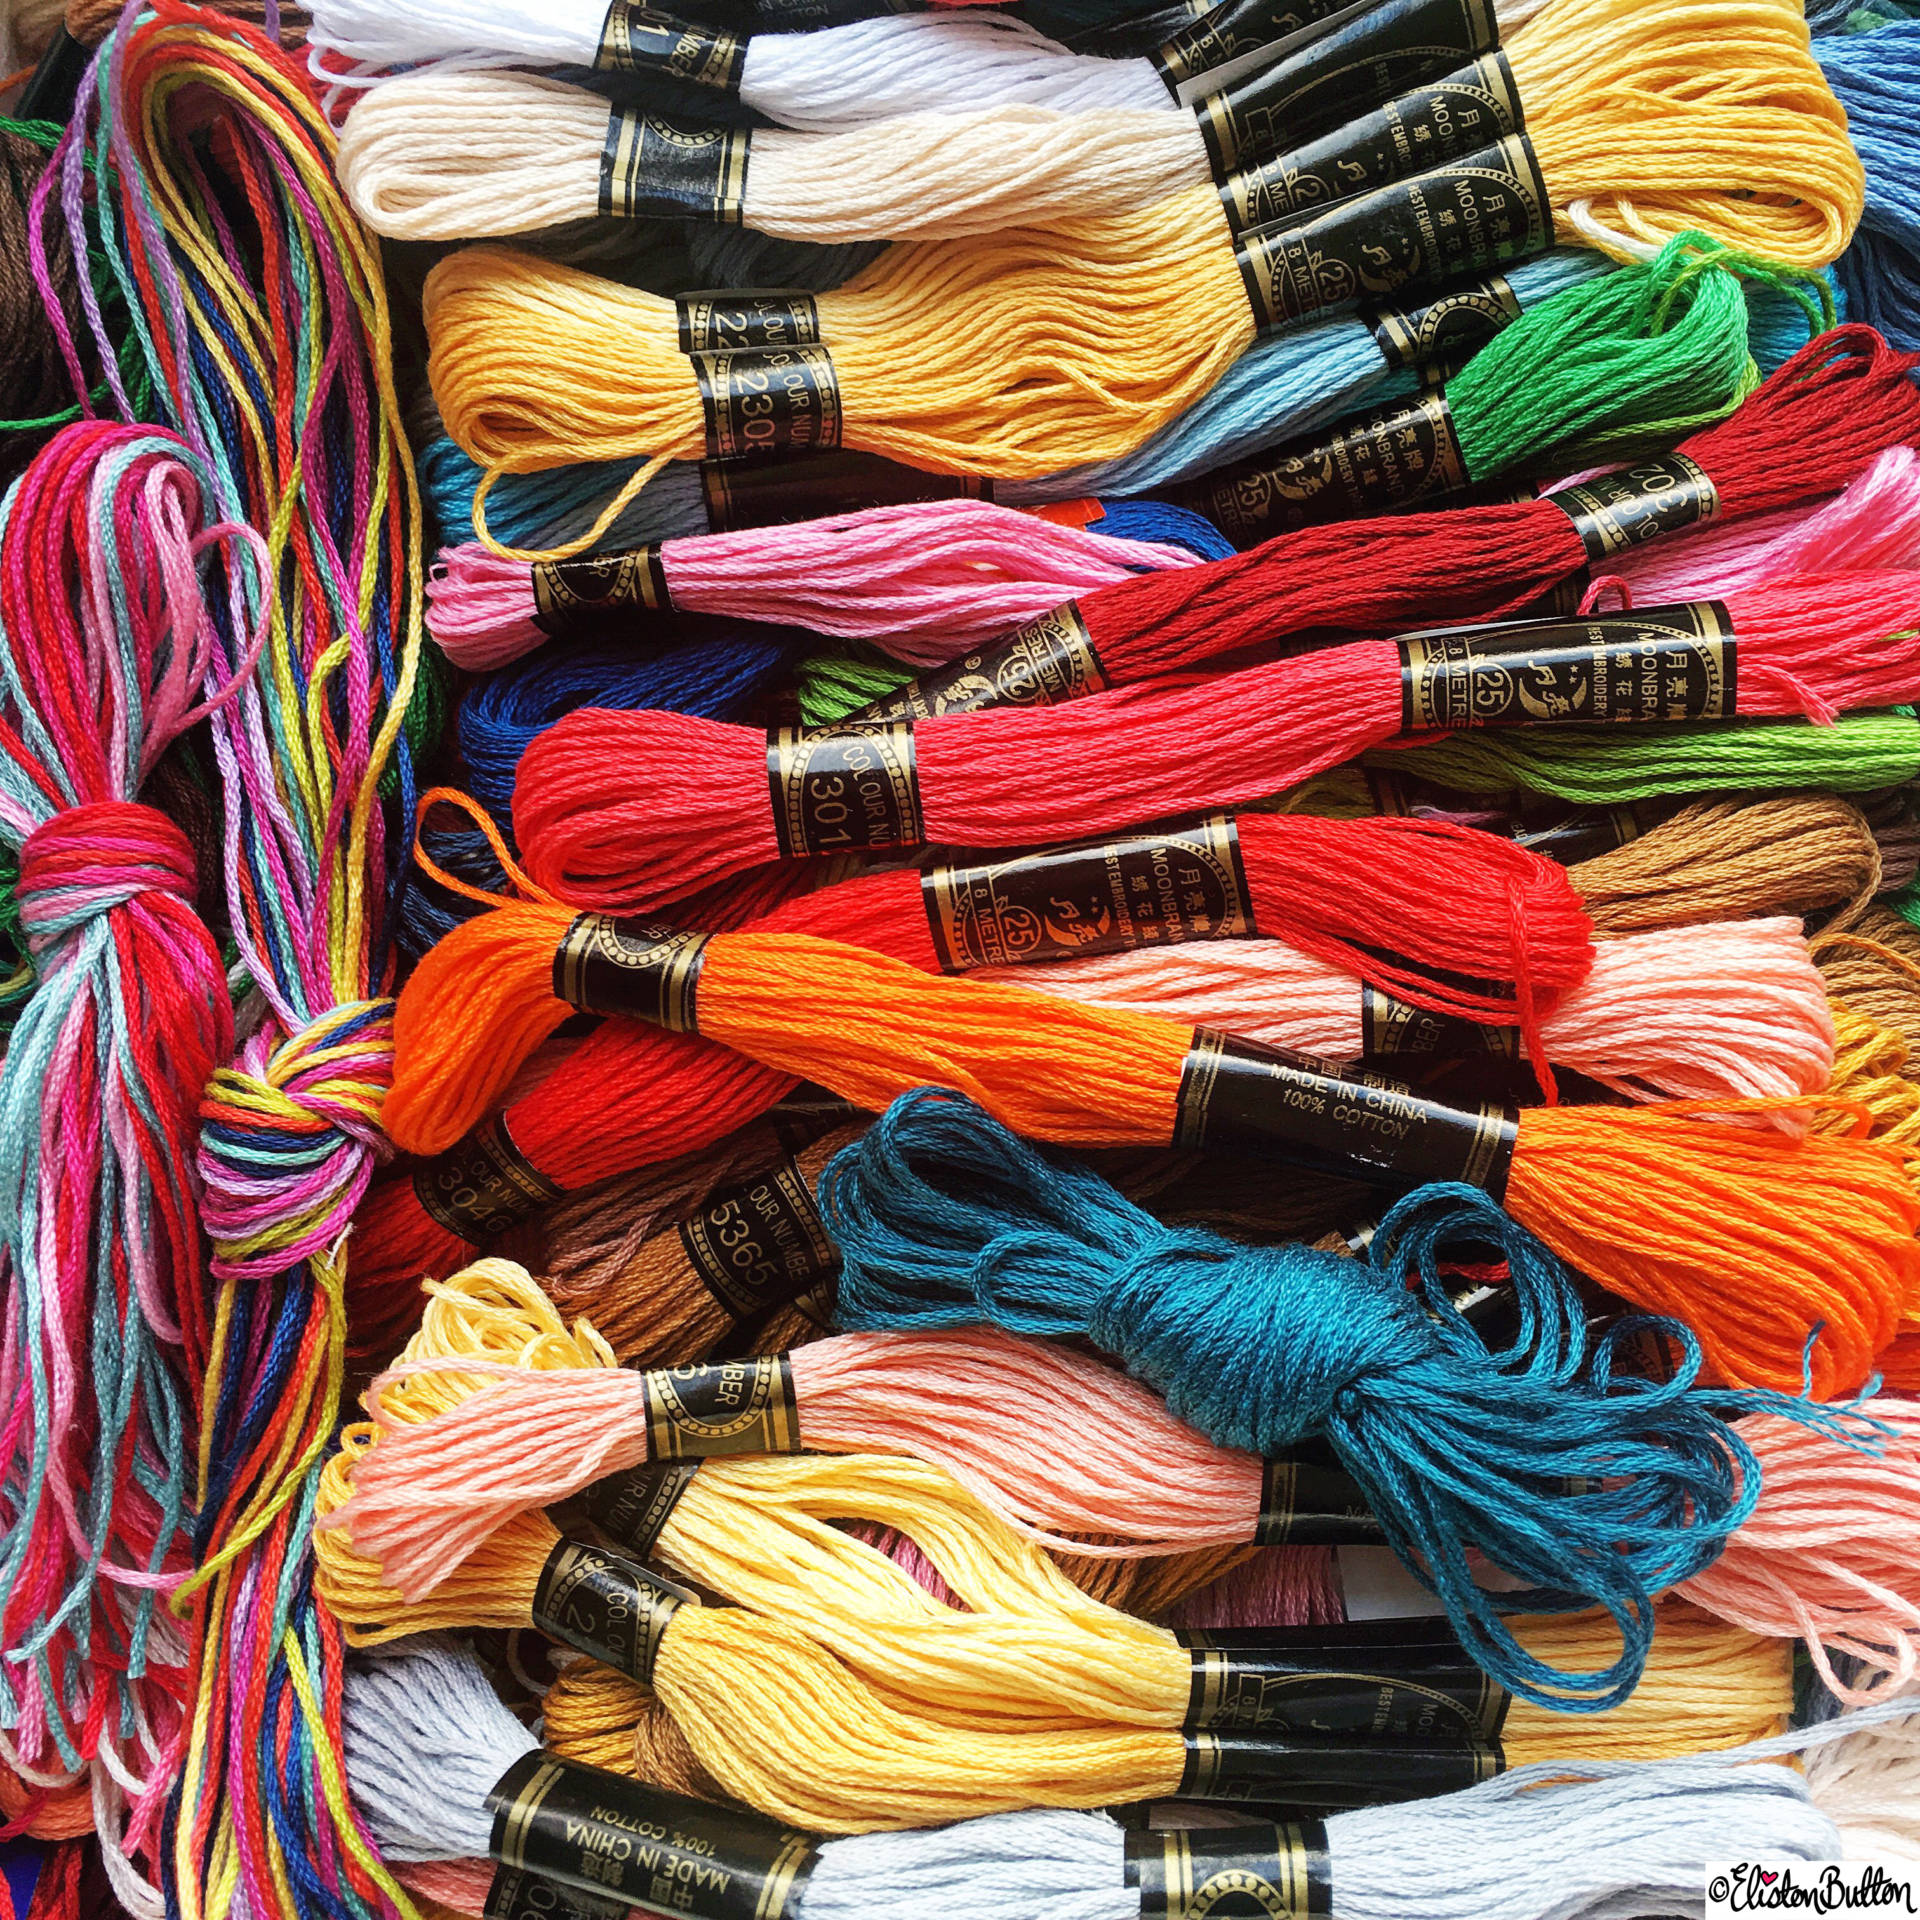 Day 27 - Messy - Coloured Embroidery Threads - Photo-a-Day – April 2016 at www.elistonbutton.com - Eliston Button - That Crafty Kid – Art, Design, Craft & Adventure.